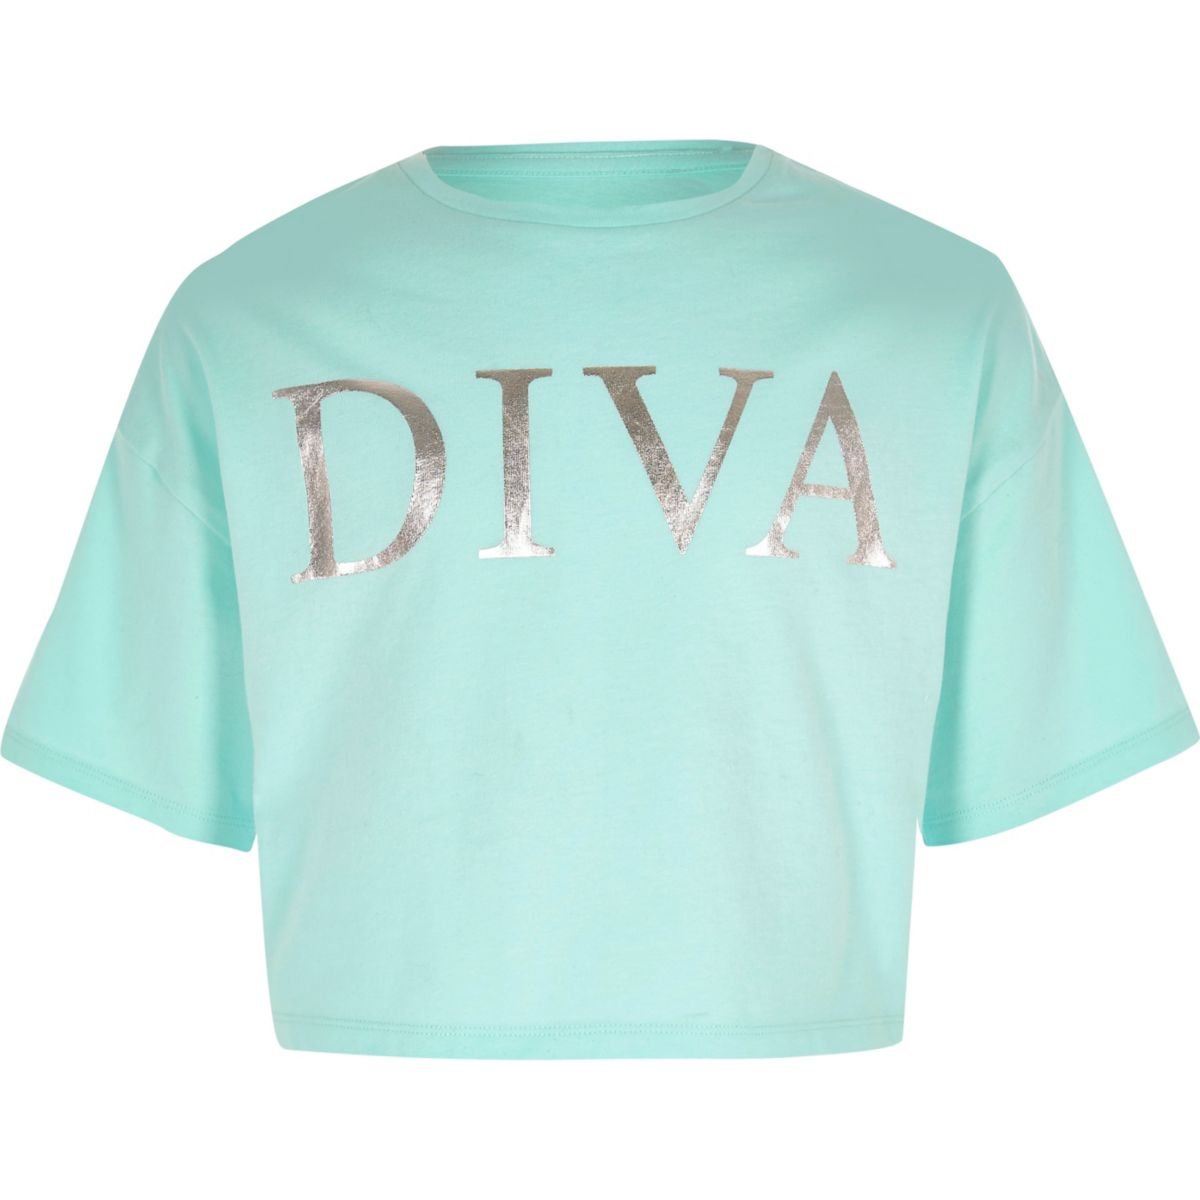 Girls light blue 'Diva' cropped T-shirt